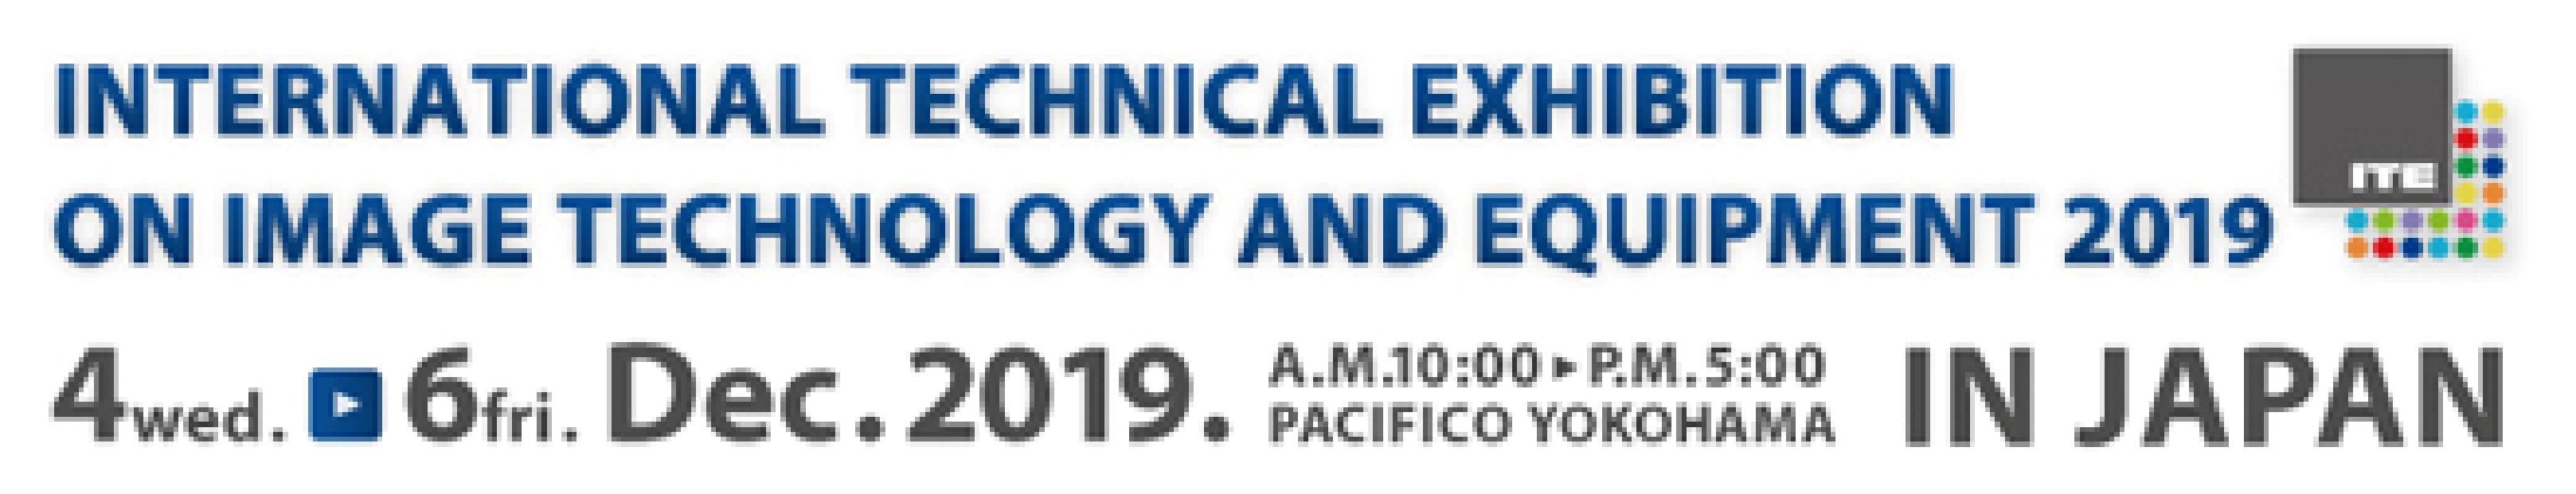 international_technical_exhibition_on_image_technology_and_equipment_2019_logo_E.png